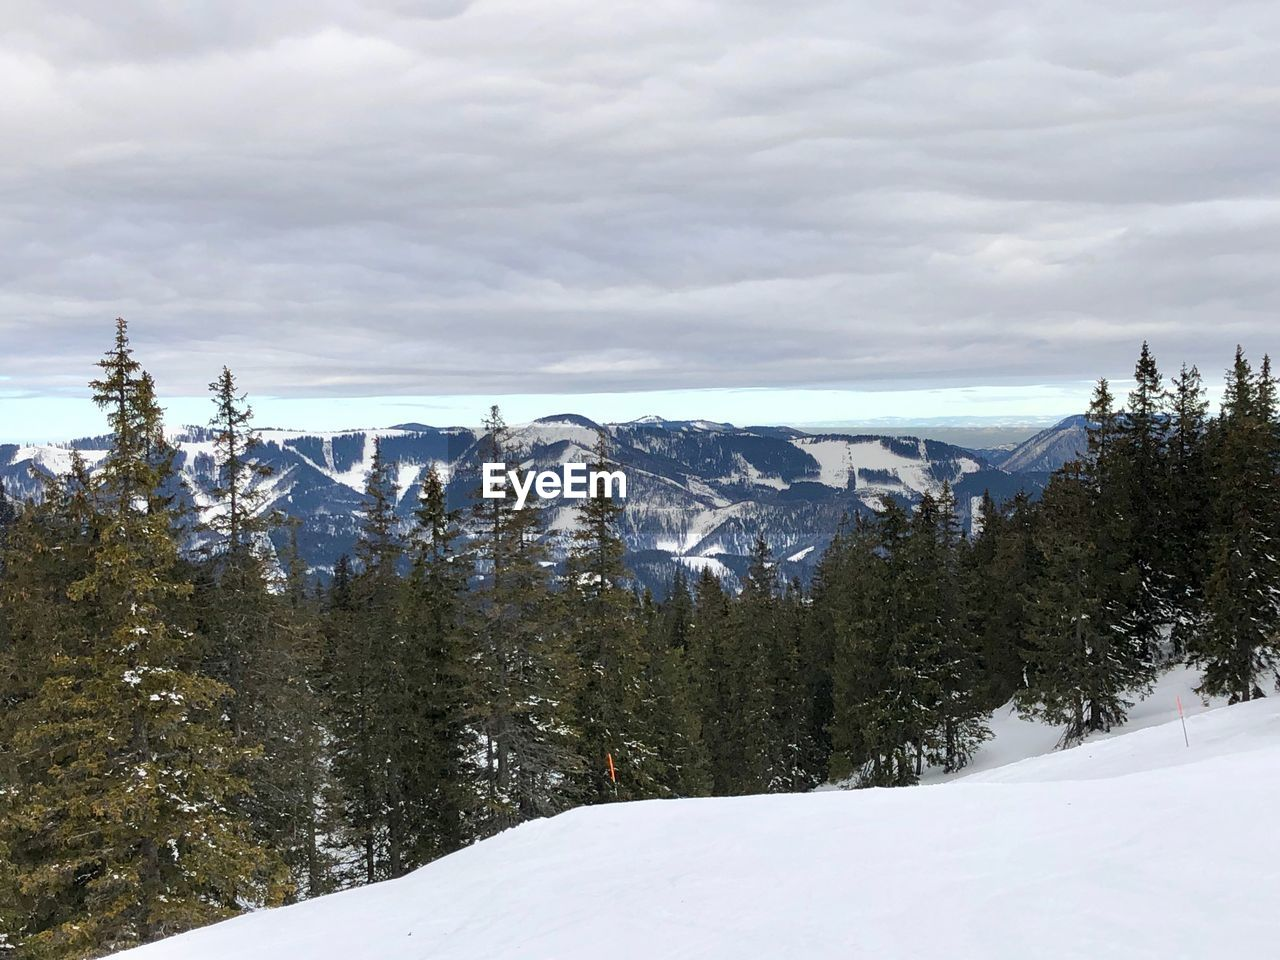 snow, winter, cold temperature, sky, cloud - sky, beauty in nature, tree, mountain, scenics - nature, plant, tranquil scene, environment, tranquility, nature, landscape, day, non-urban scene, covering, white color, no people, outdoors, snowcapped mountain, coniferous tree, range